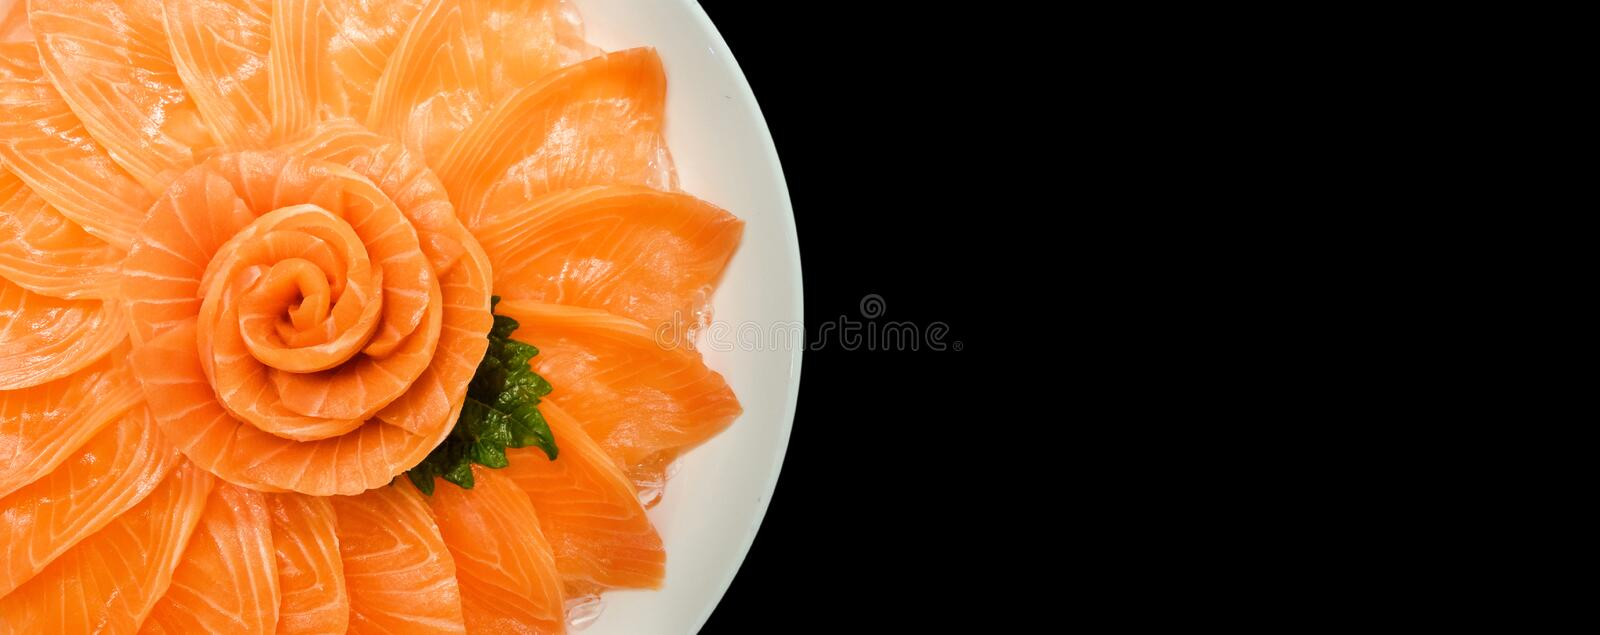 Top view of salmon sashimi serve on flower shape in white ice bowl boat isolated on black background, Japanese style stock photos